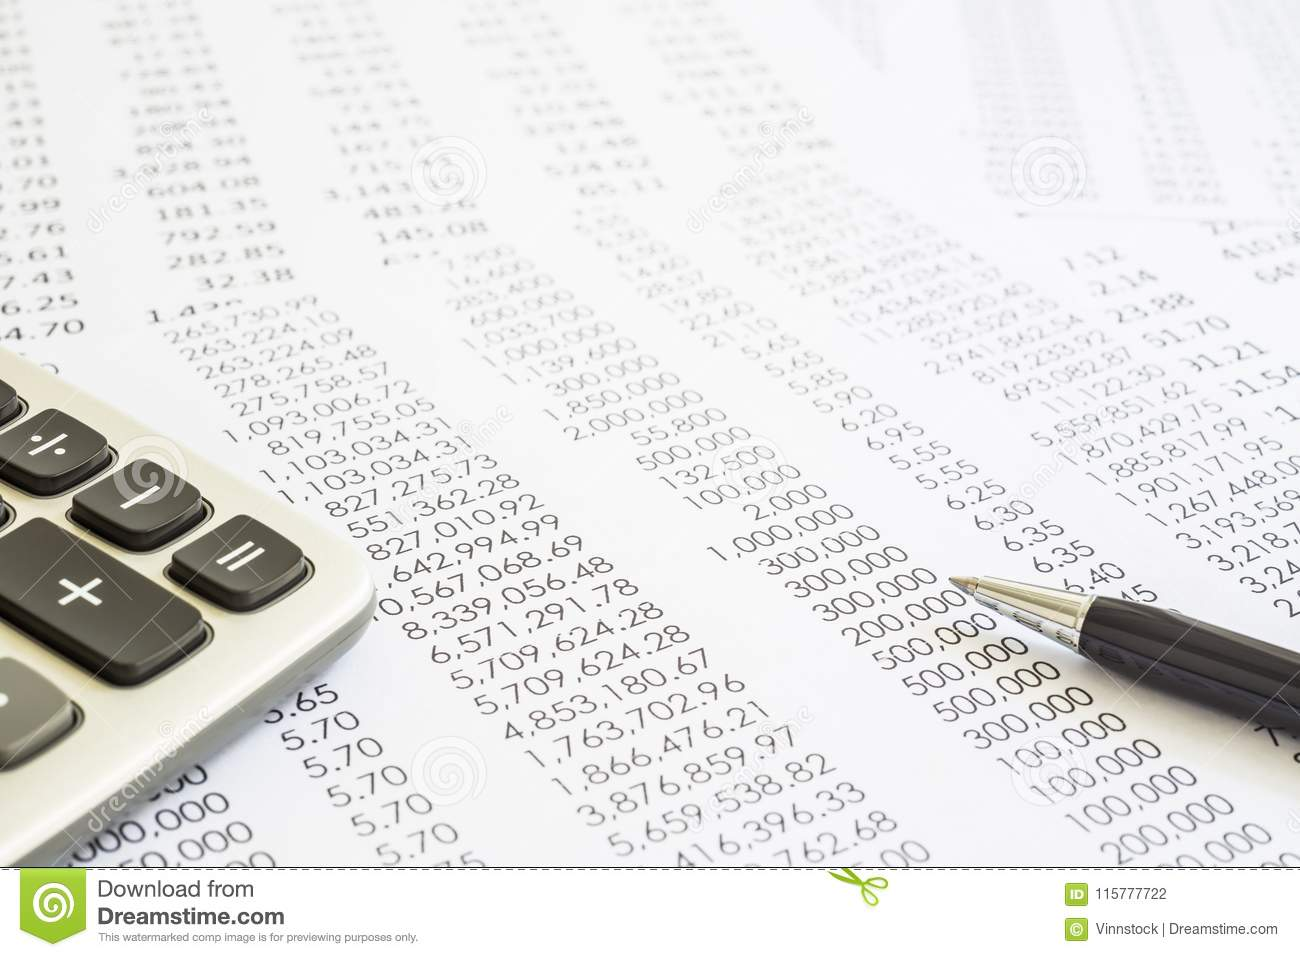 Audit and accounting reports of financial statements.